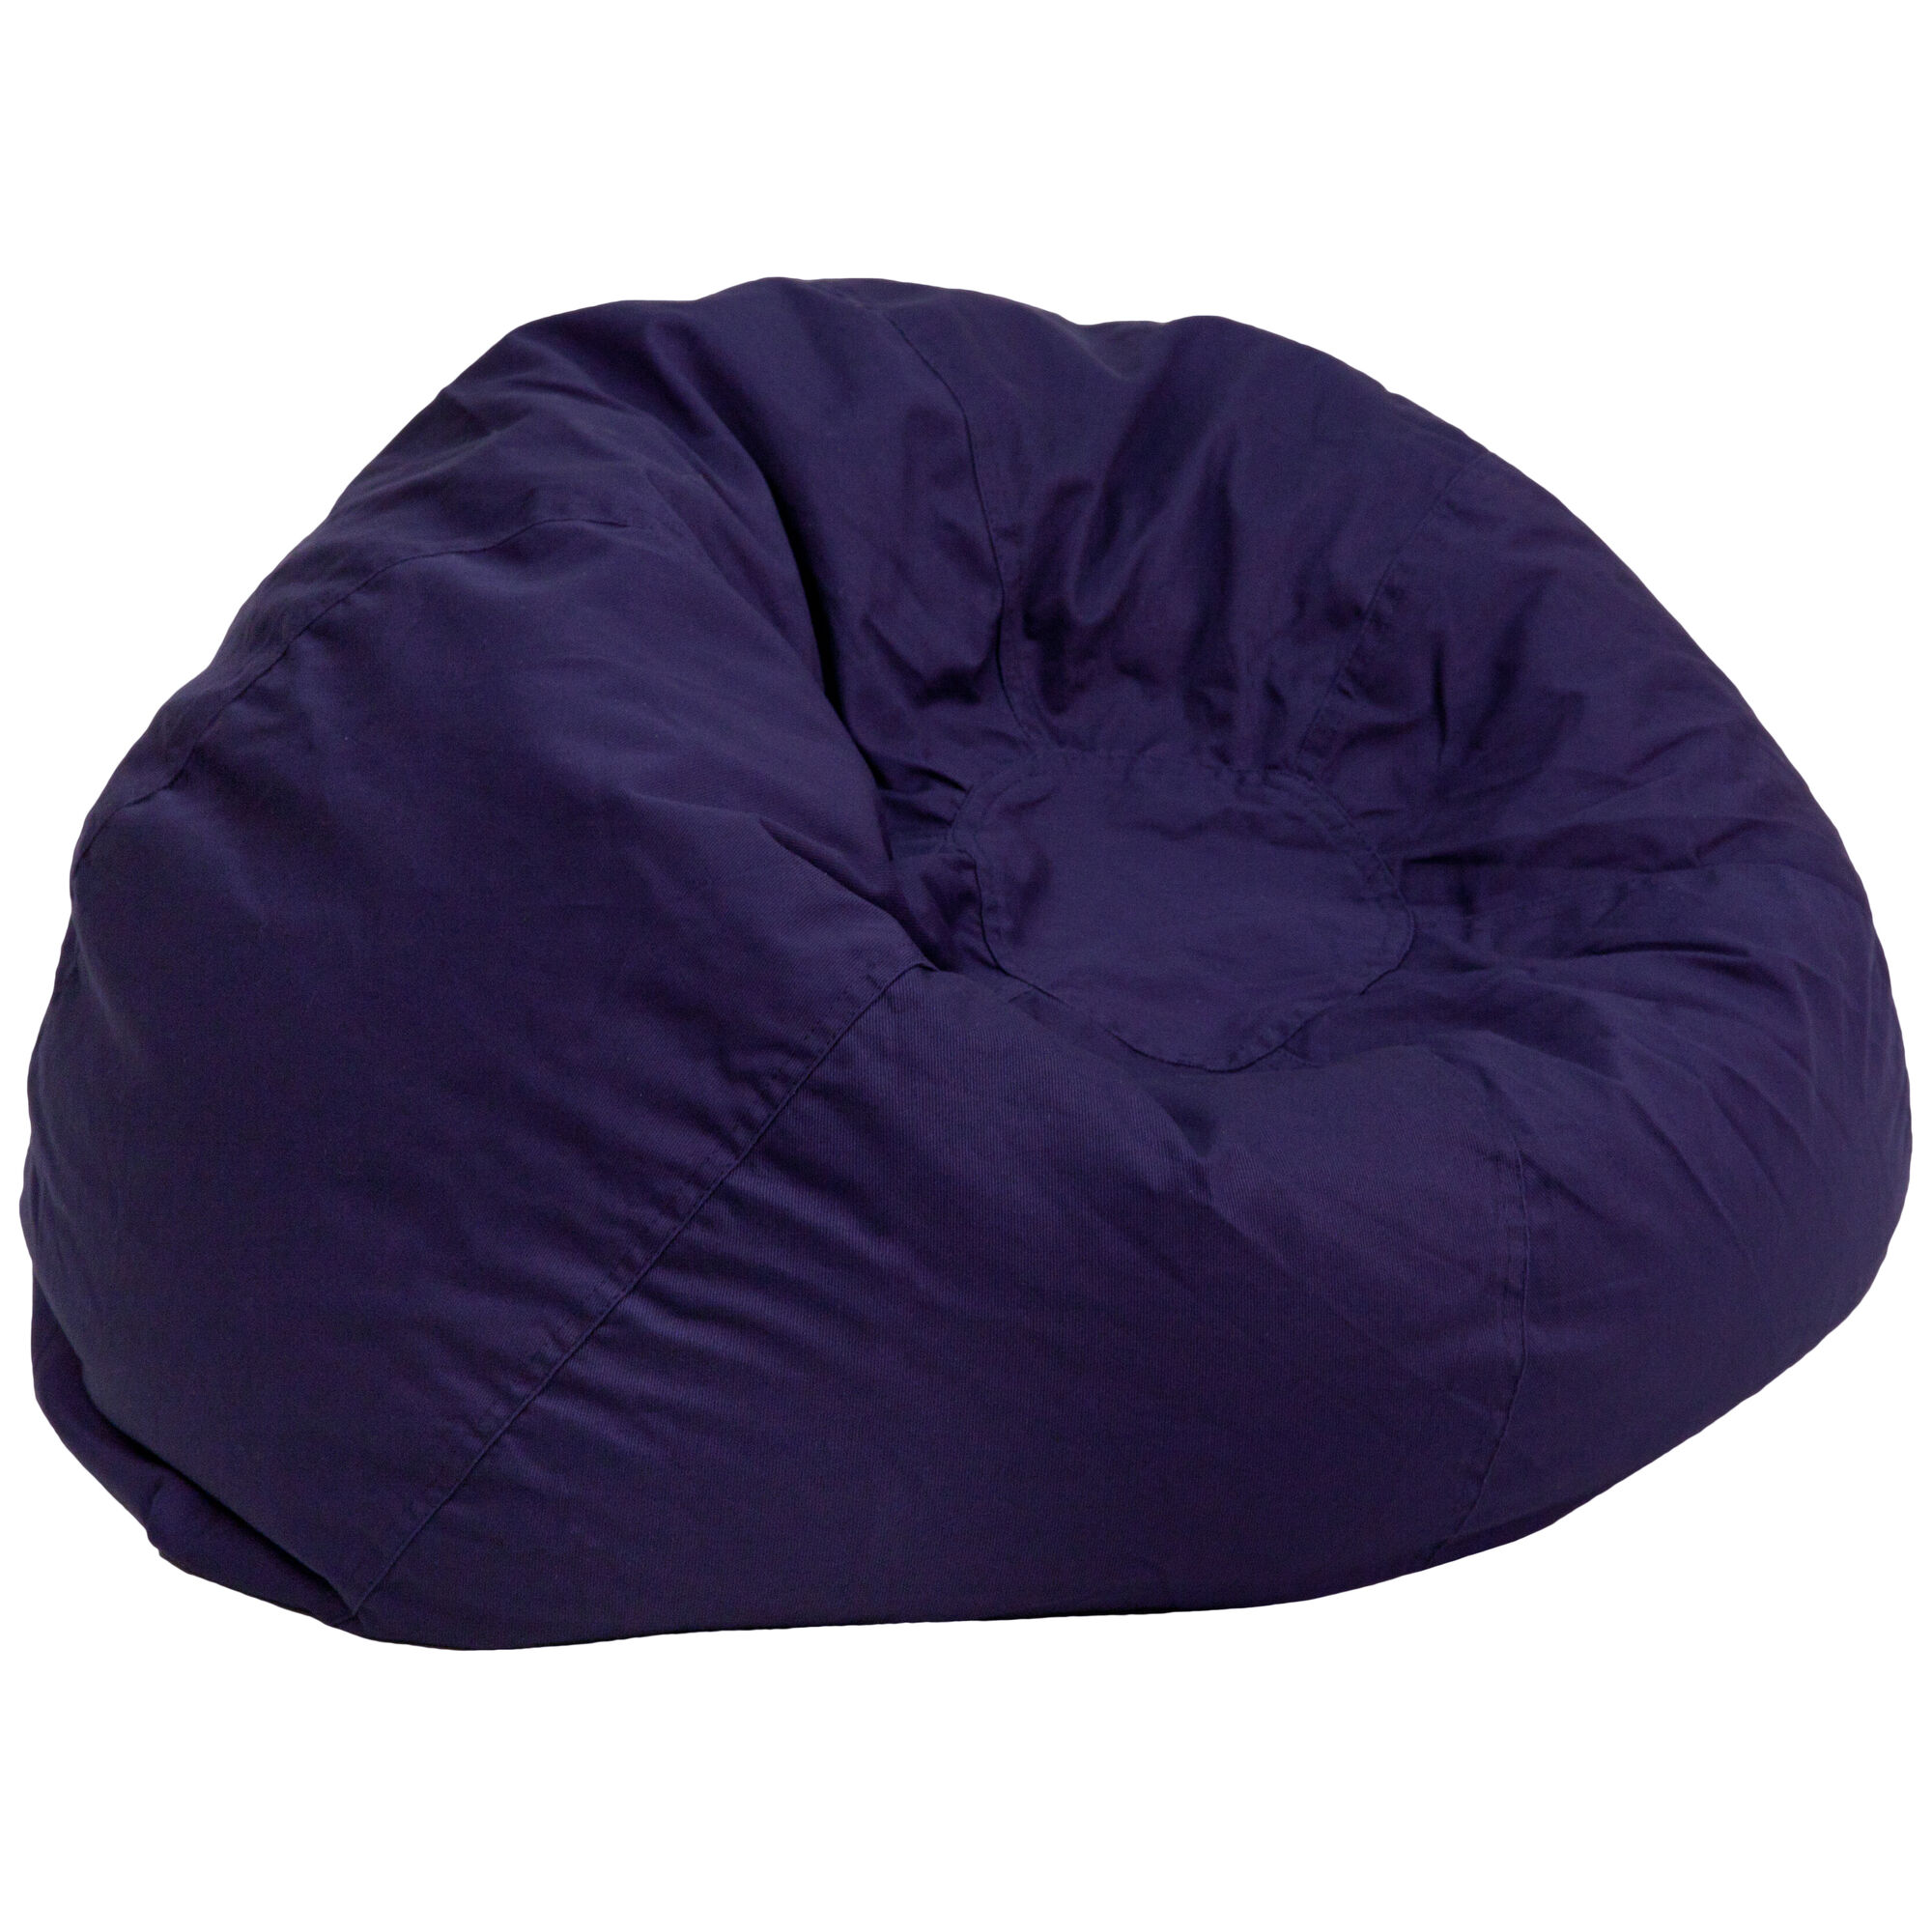 Groovy Oversized Solid Navy Blue Bean Bag Chair For Kids And Adults Ocoug Best Dining Table And Chair Ideas Images Ocougorg